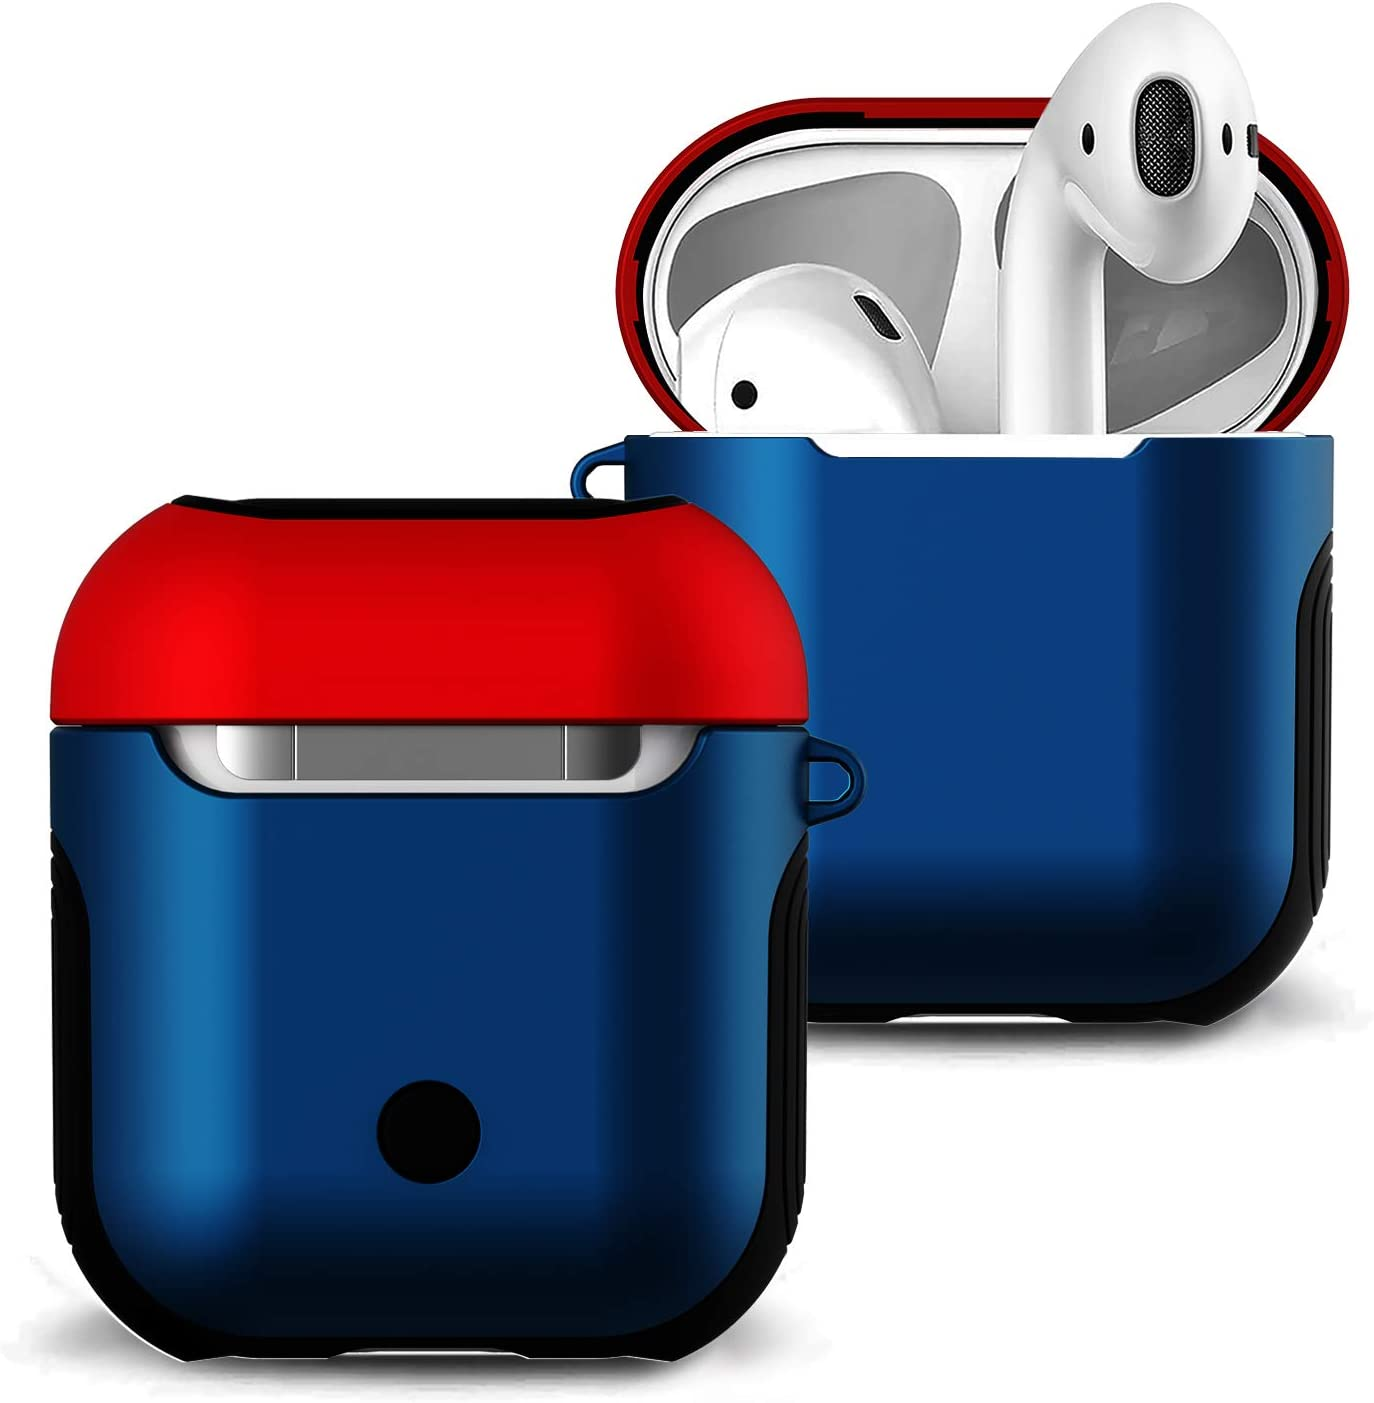 Airpods Case Cover Skin - Romozi Soft Silicone Case +Hard Cover Dual Layer Air Pods Case,Shockproof Drop Proof with Lanyard AirPod Case compatible Apple Airpods Accessories (Blue+Red)